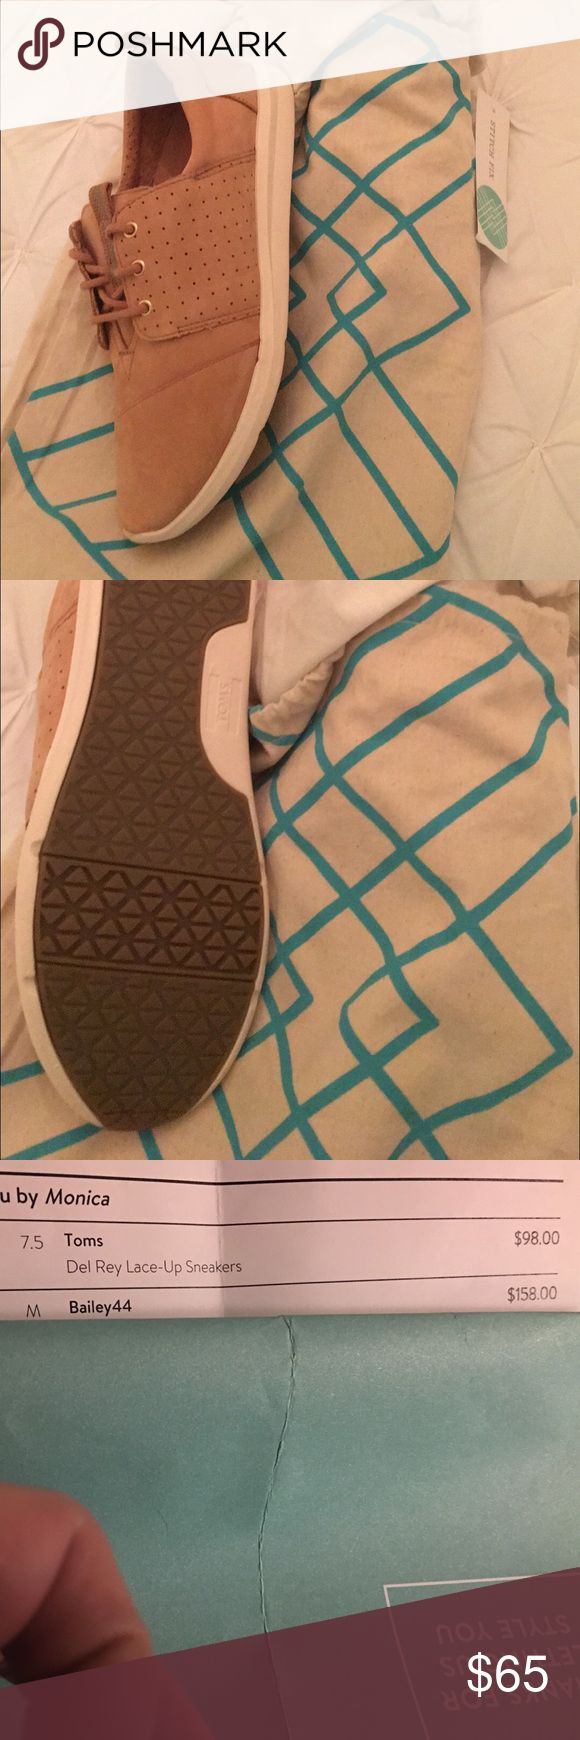 NWT stitch fix toms size 7.5 NWT toms from stitch fix size 7.5 TOMS Shoes Sneakers